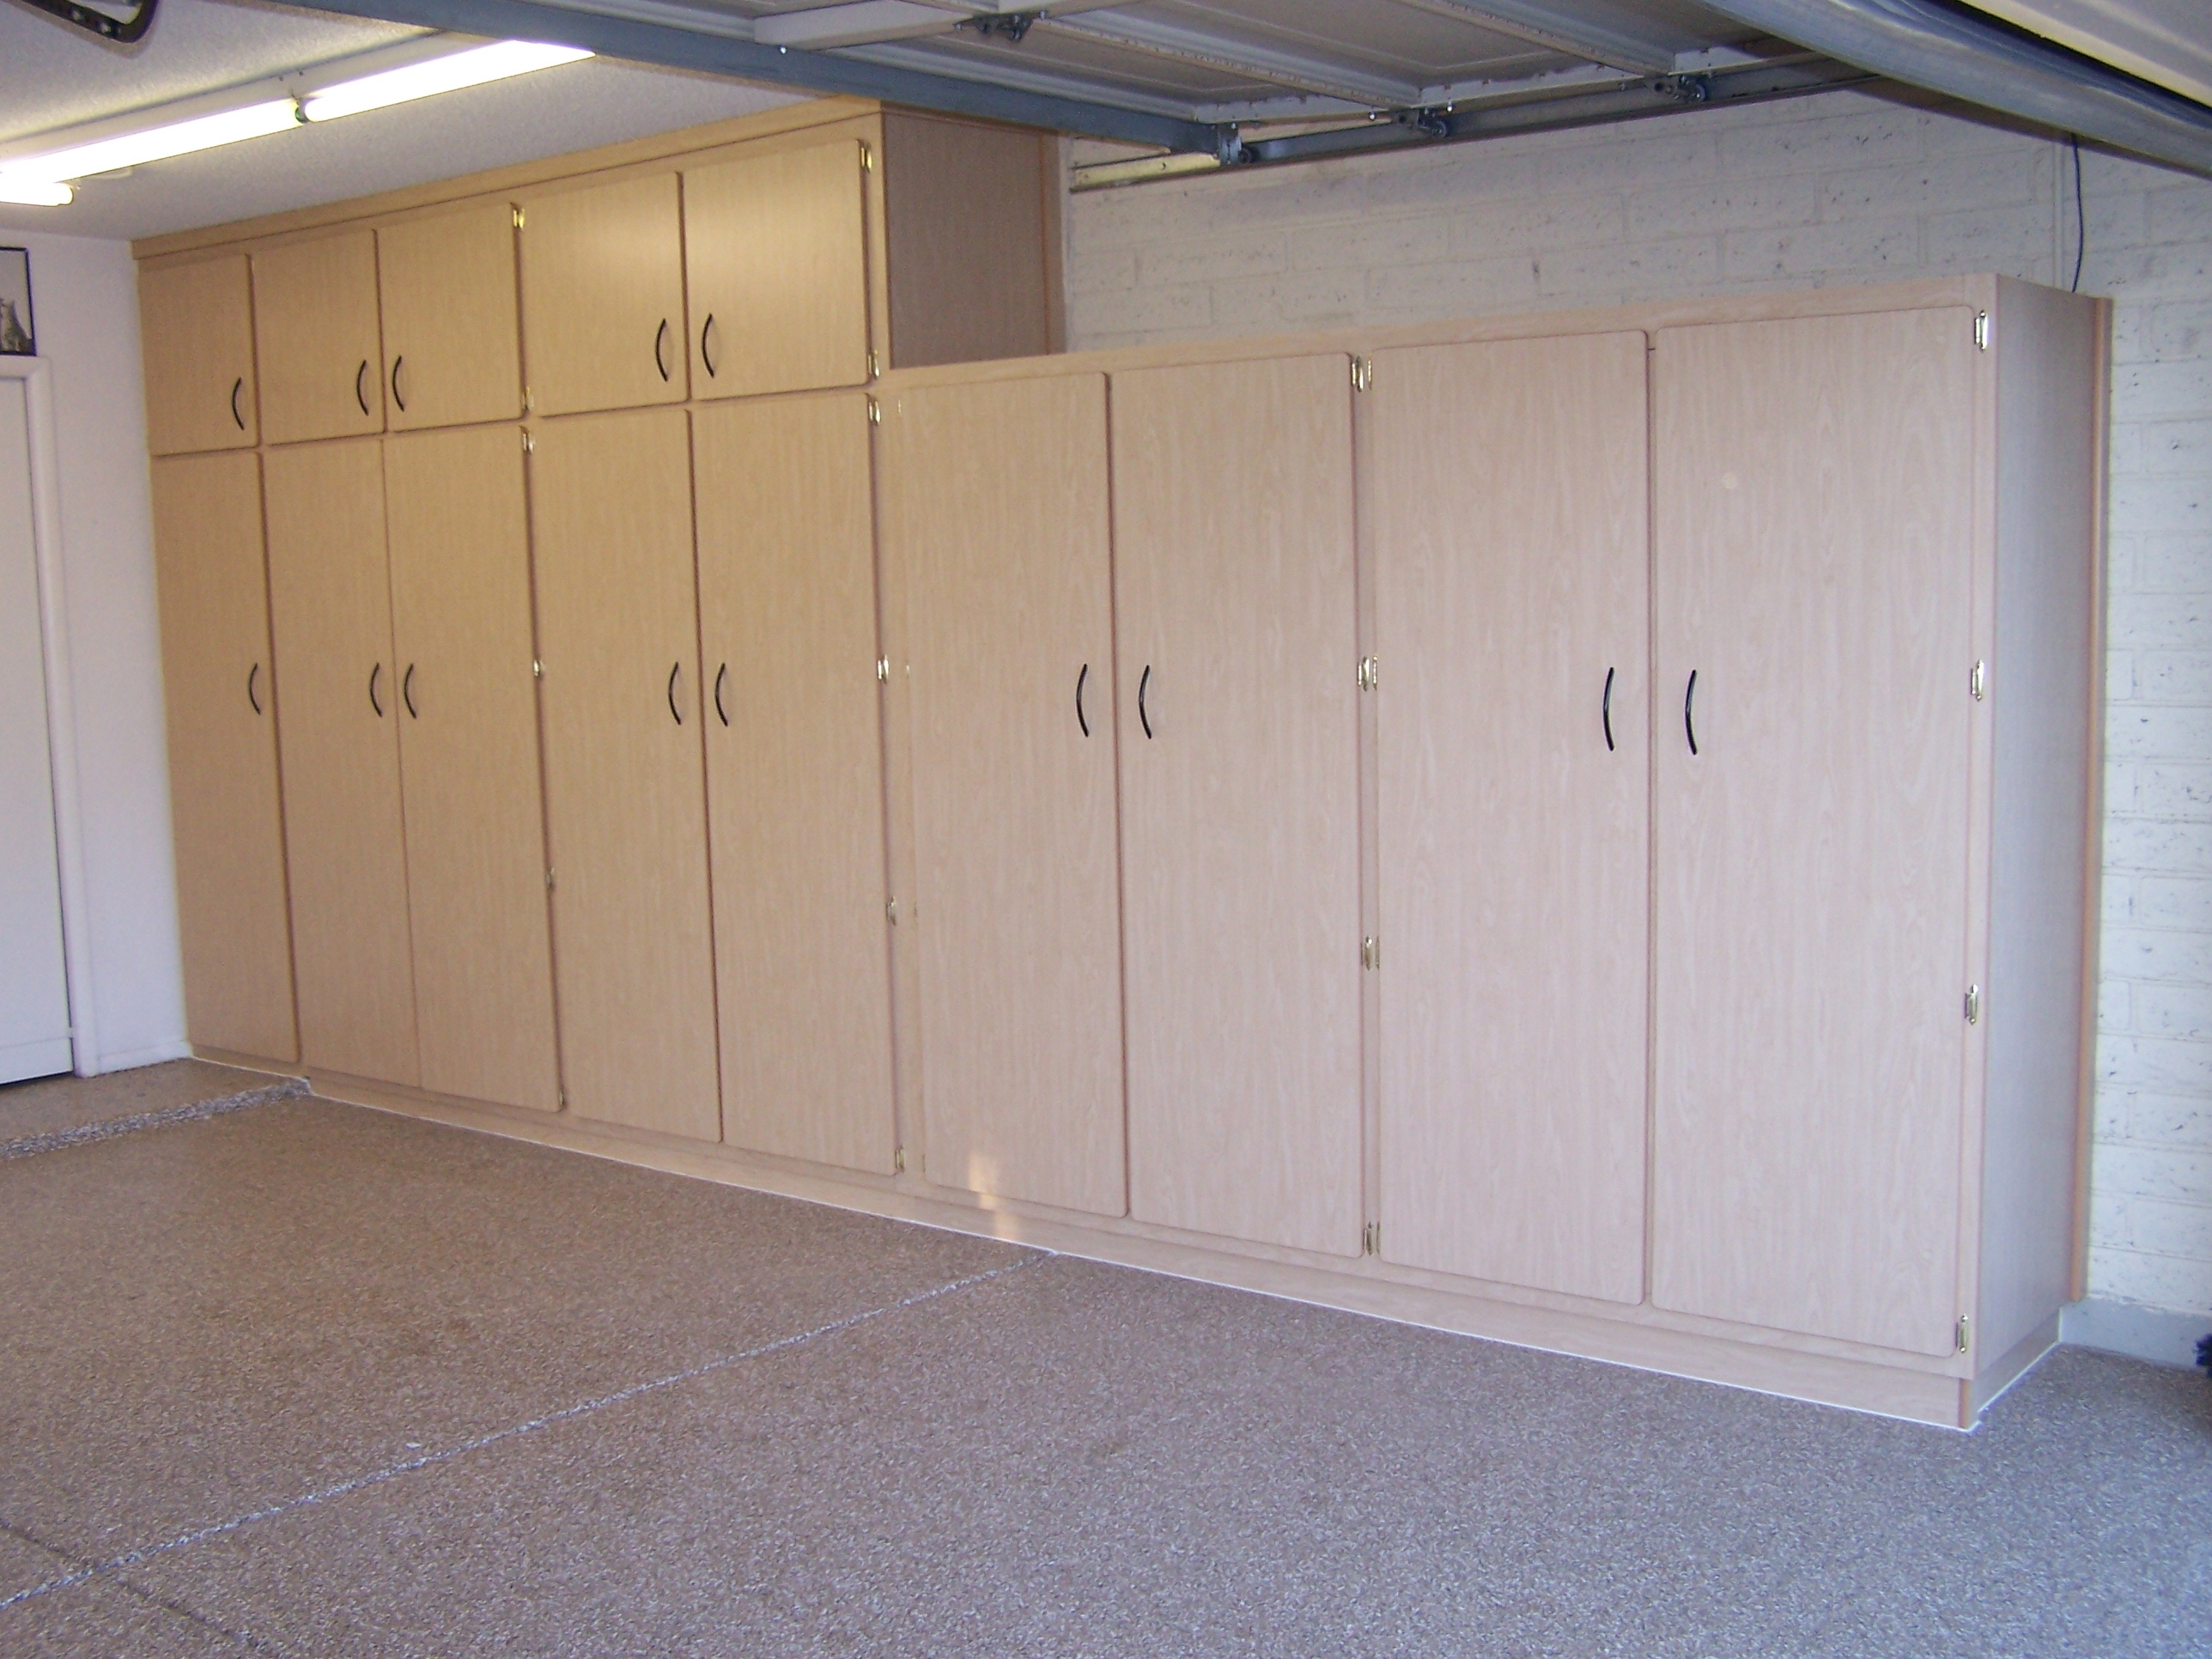 Garage Storage Cabinet With Doors